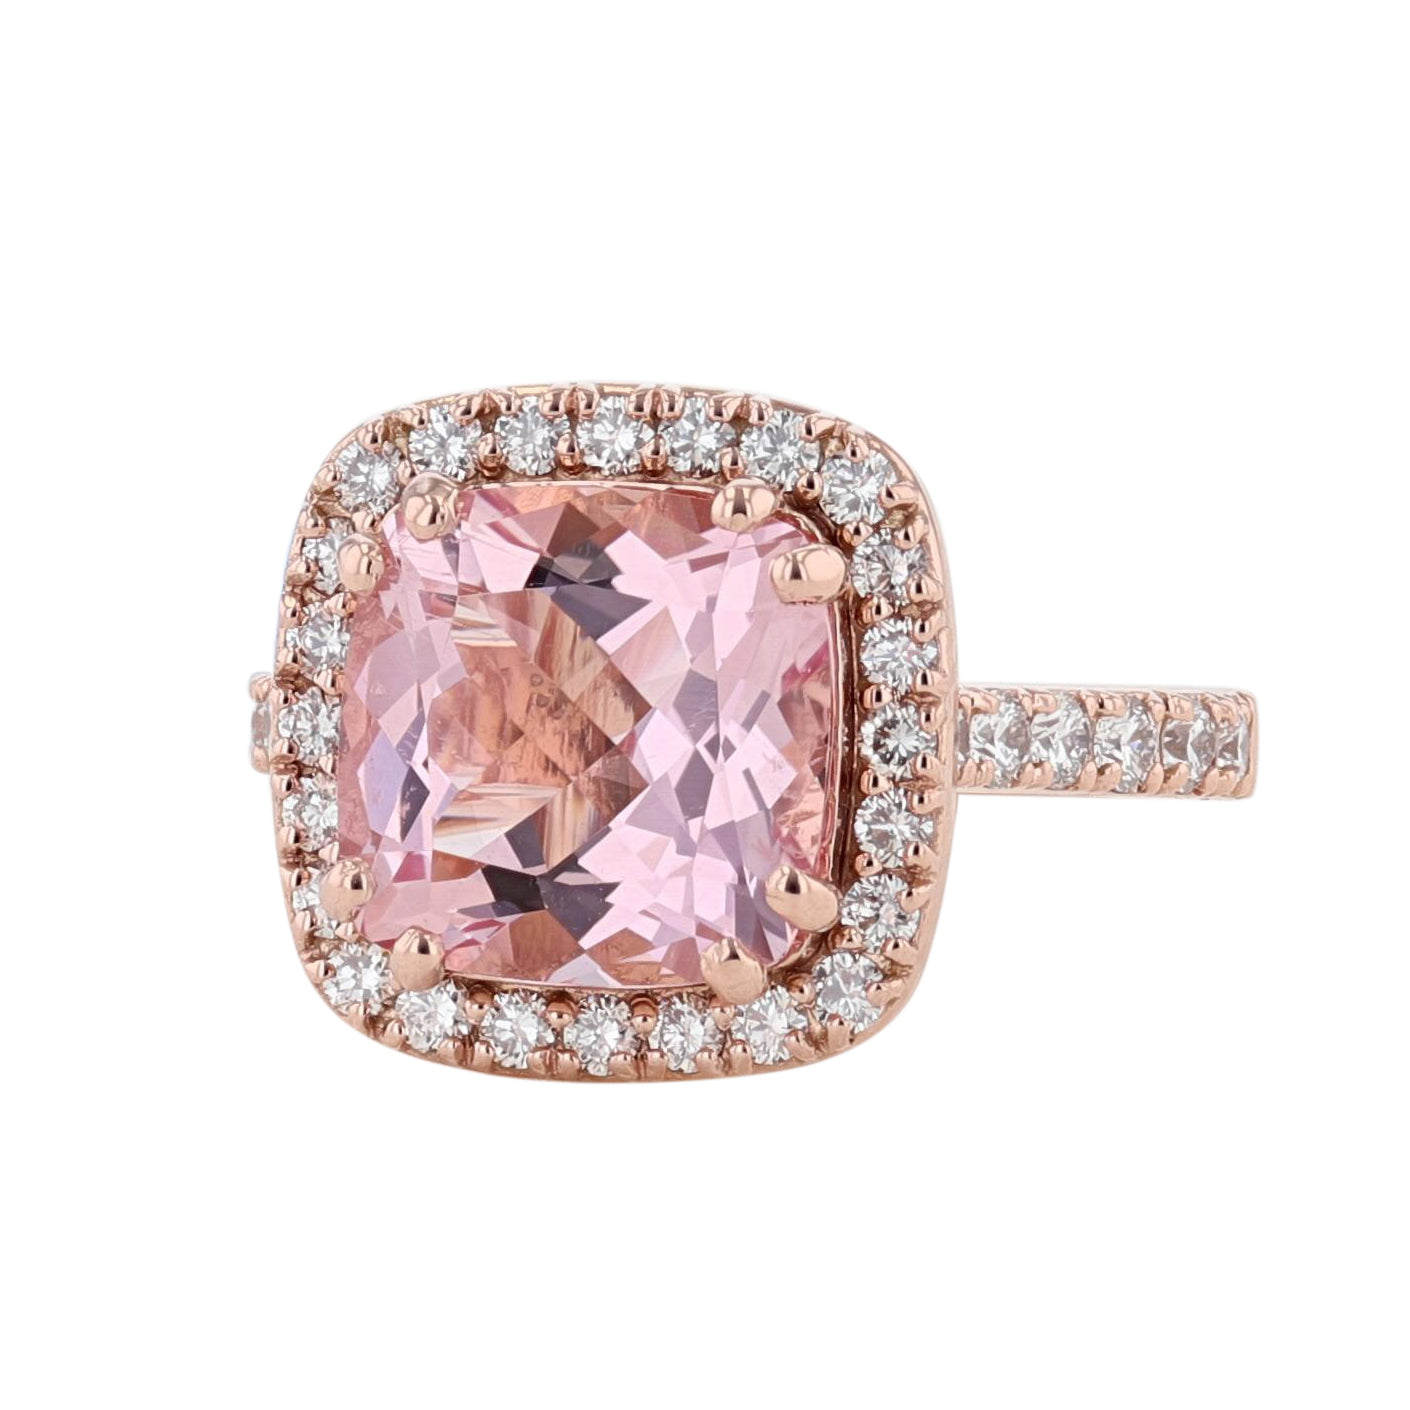 14K Rose Gold Cushion Morganite and Diamond Ring - Nazarelle